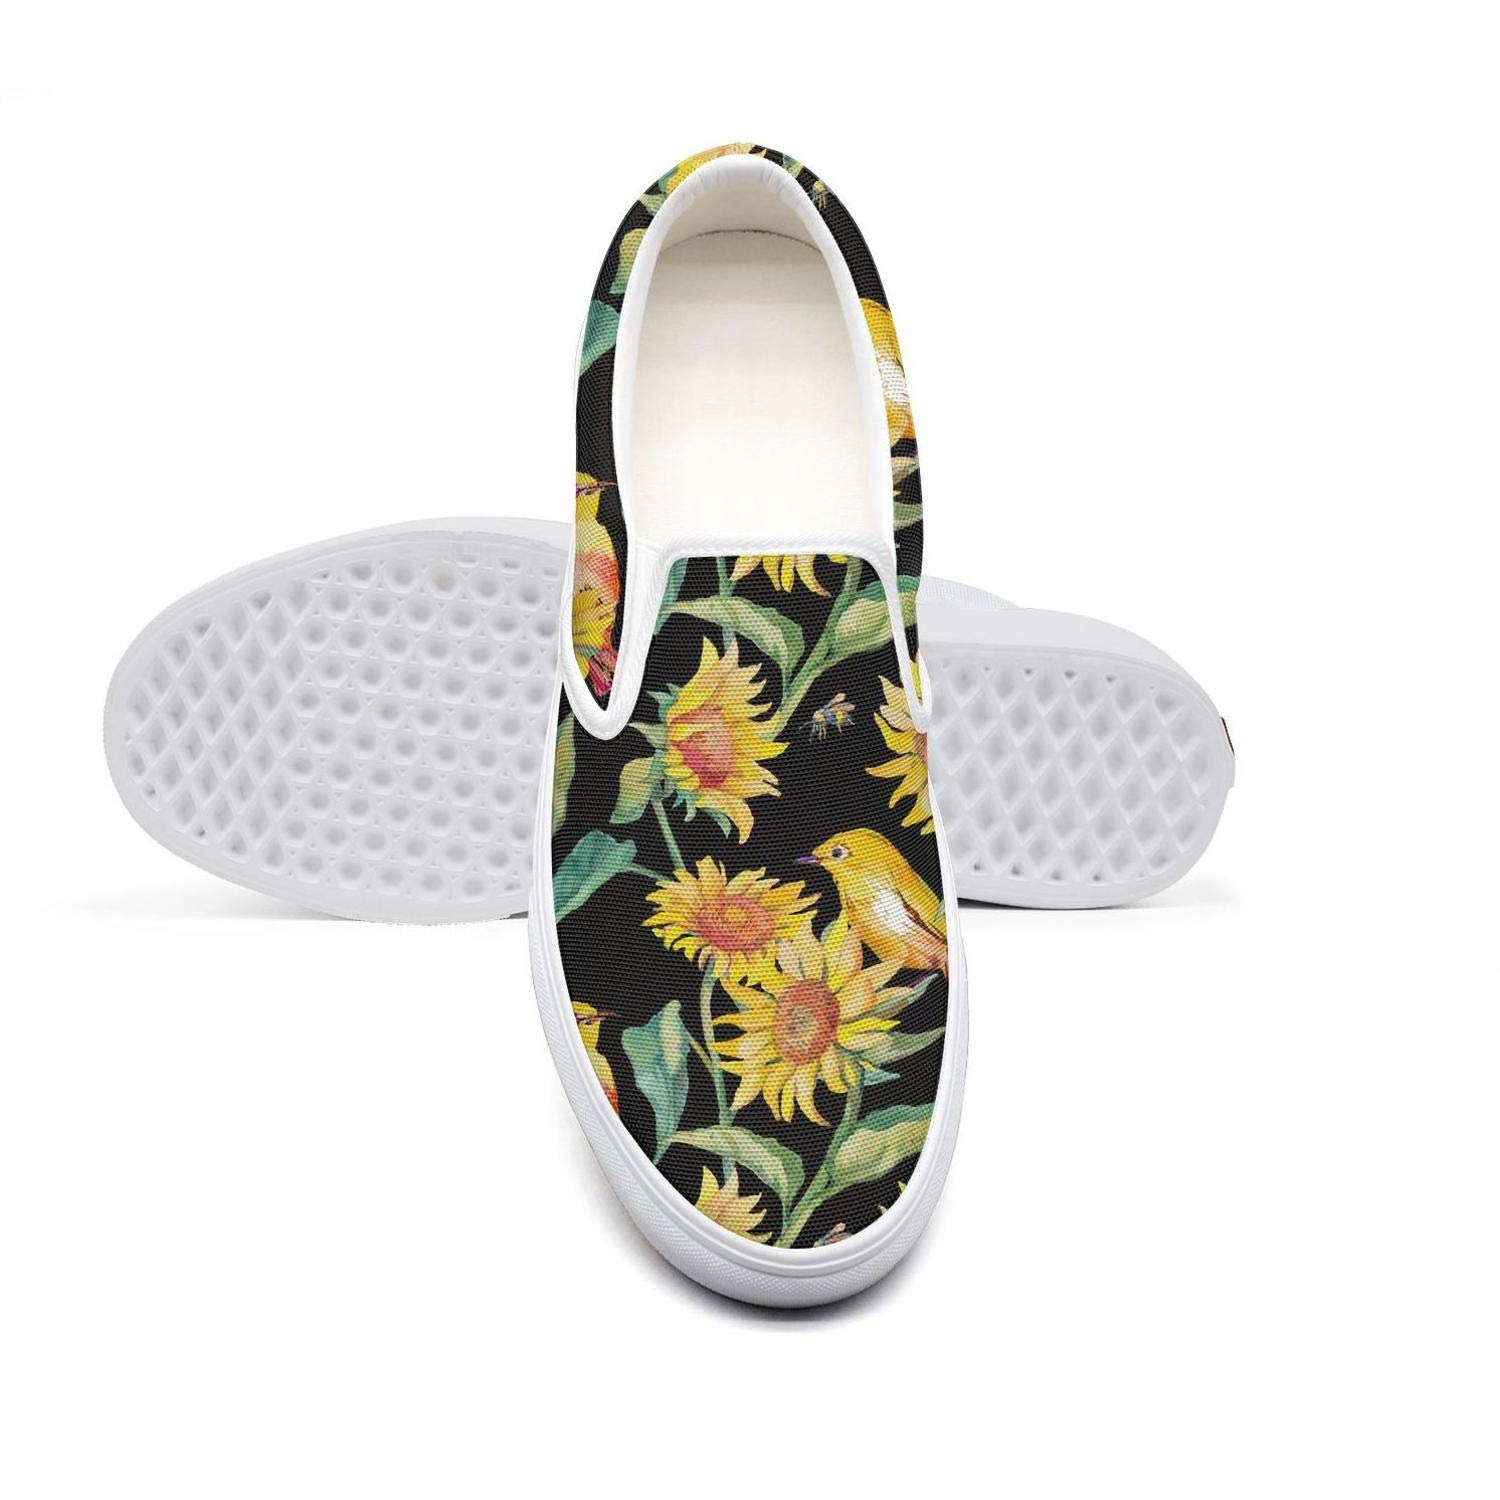 NAILINA Women Shoes Slip-on Canvas Shoes Skate Sneakers Black Watercolor Bird Cute Sunflower Plimsoll Trendy